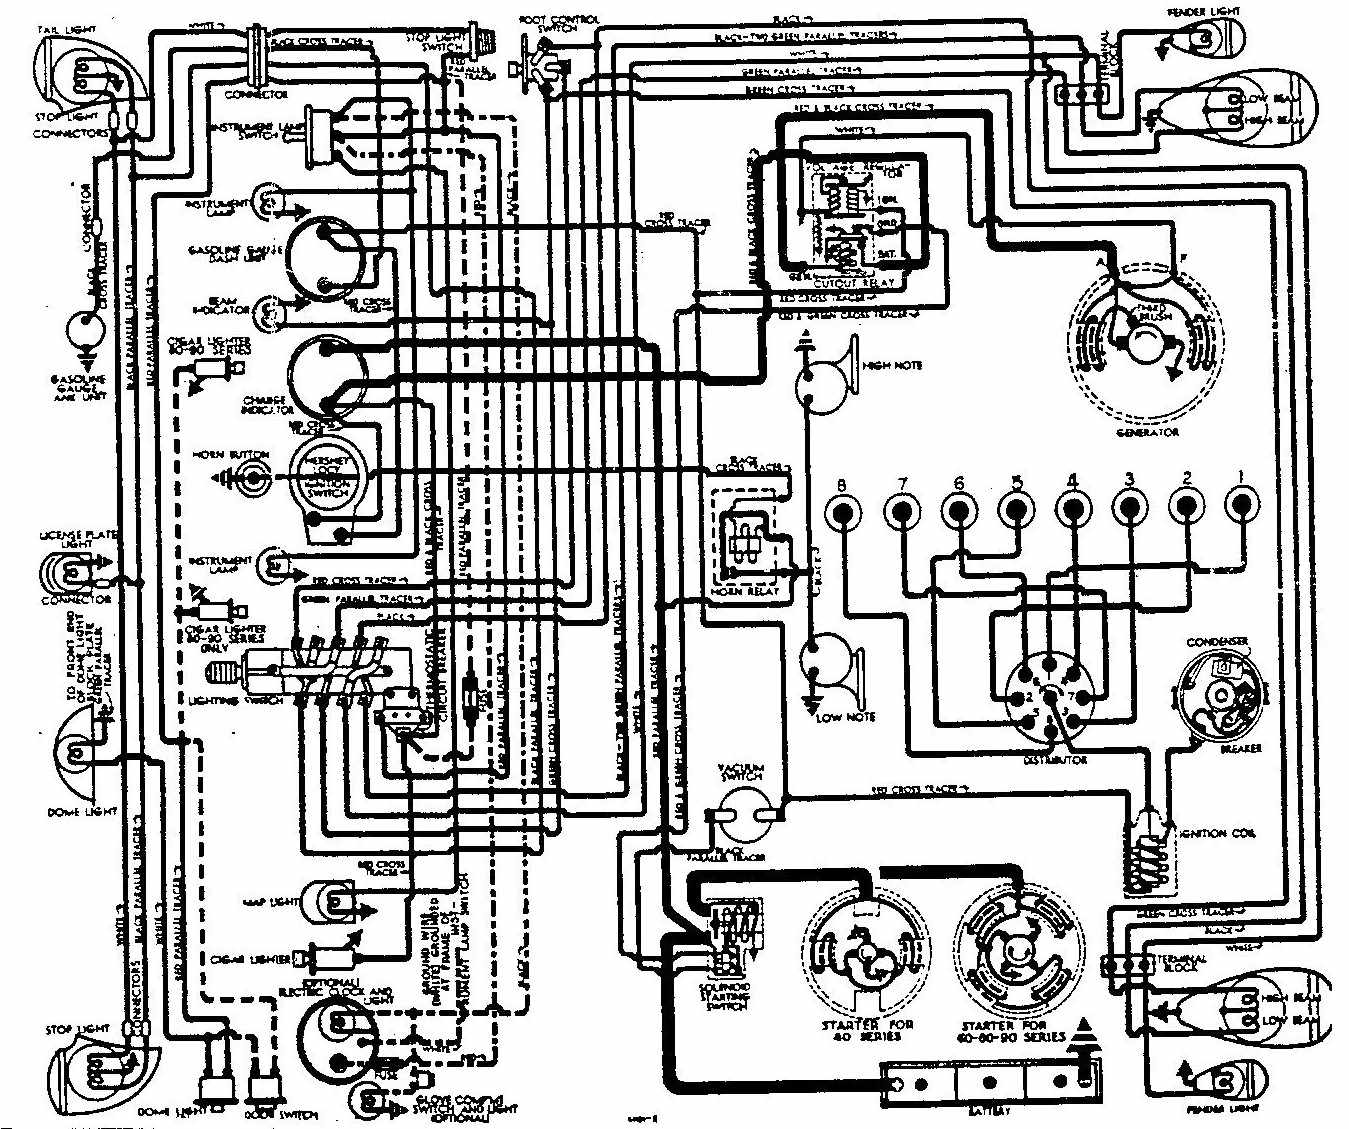 Ford 4610 Parts Diagram Wiring Schematic 5600 Tractor Free Download Injector Pump